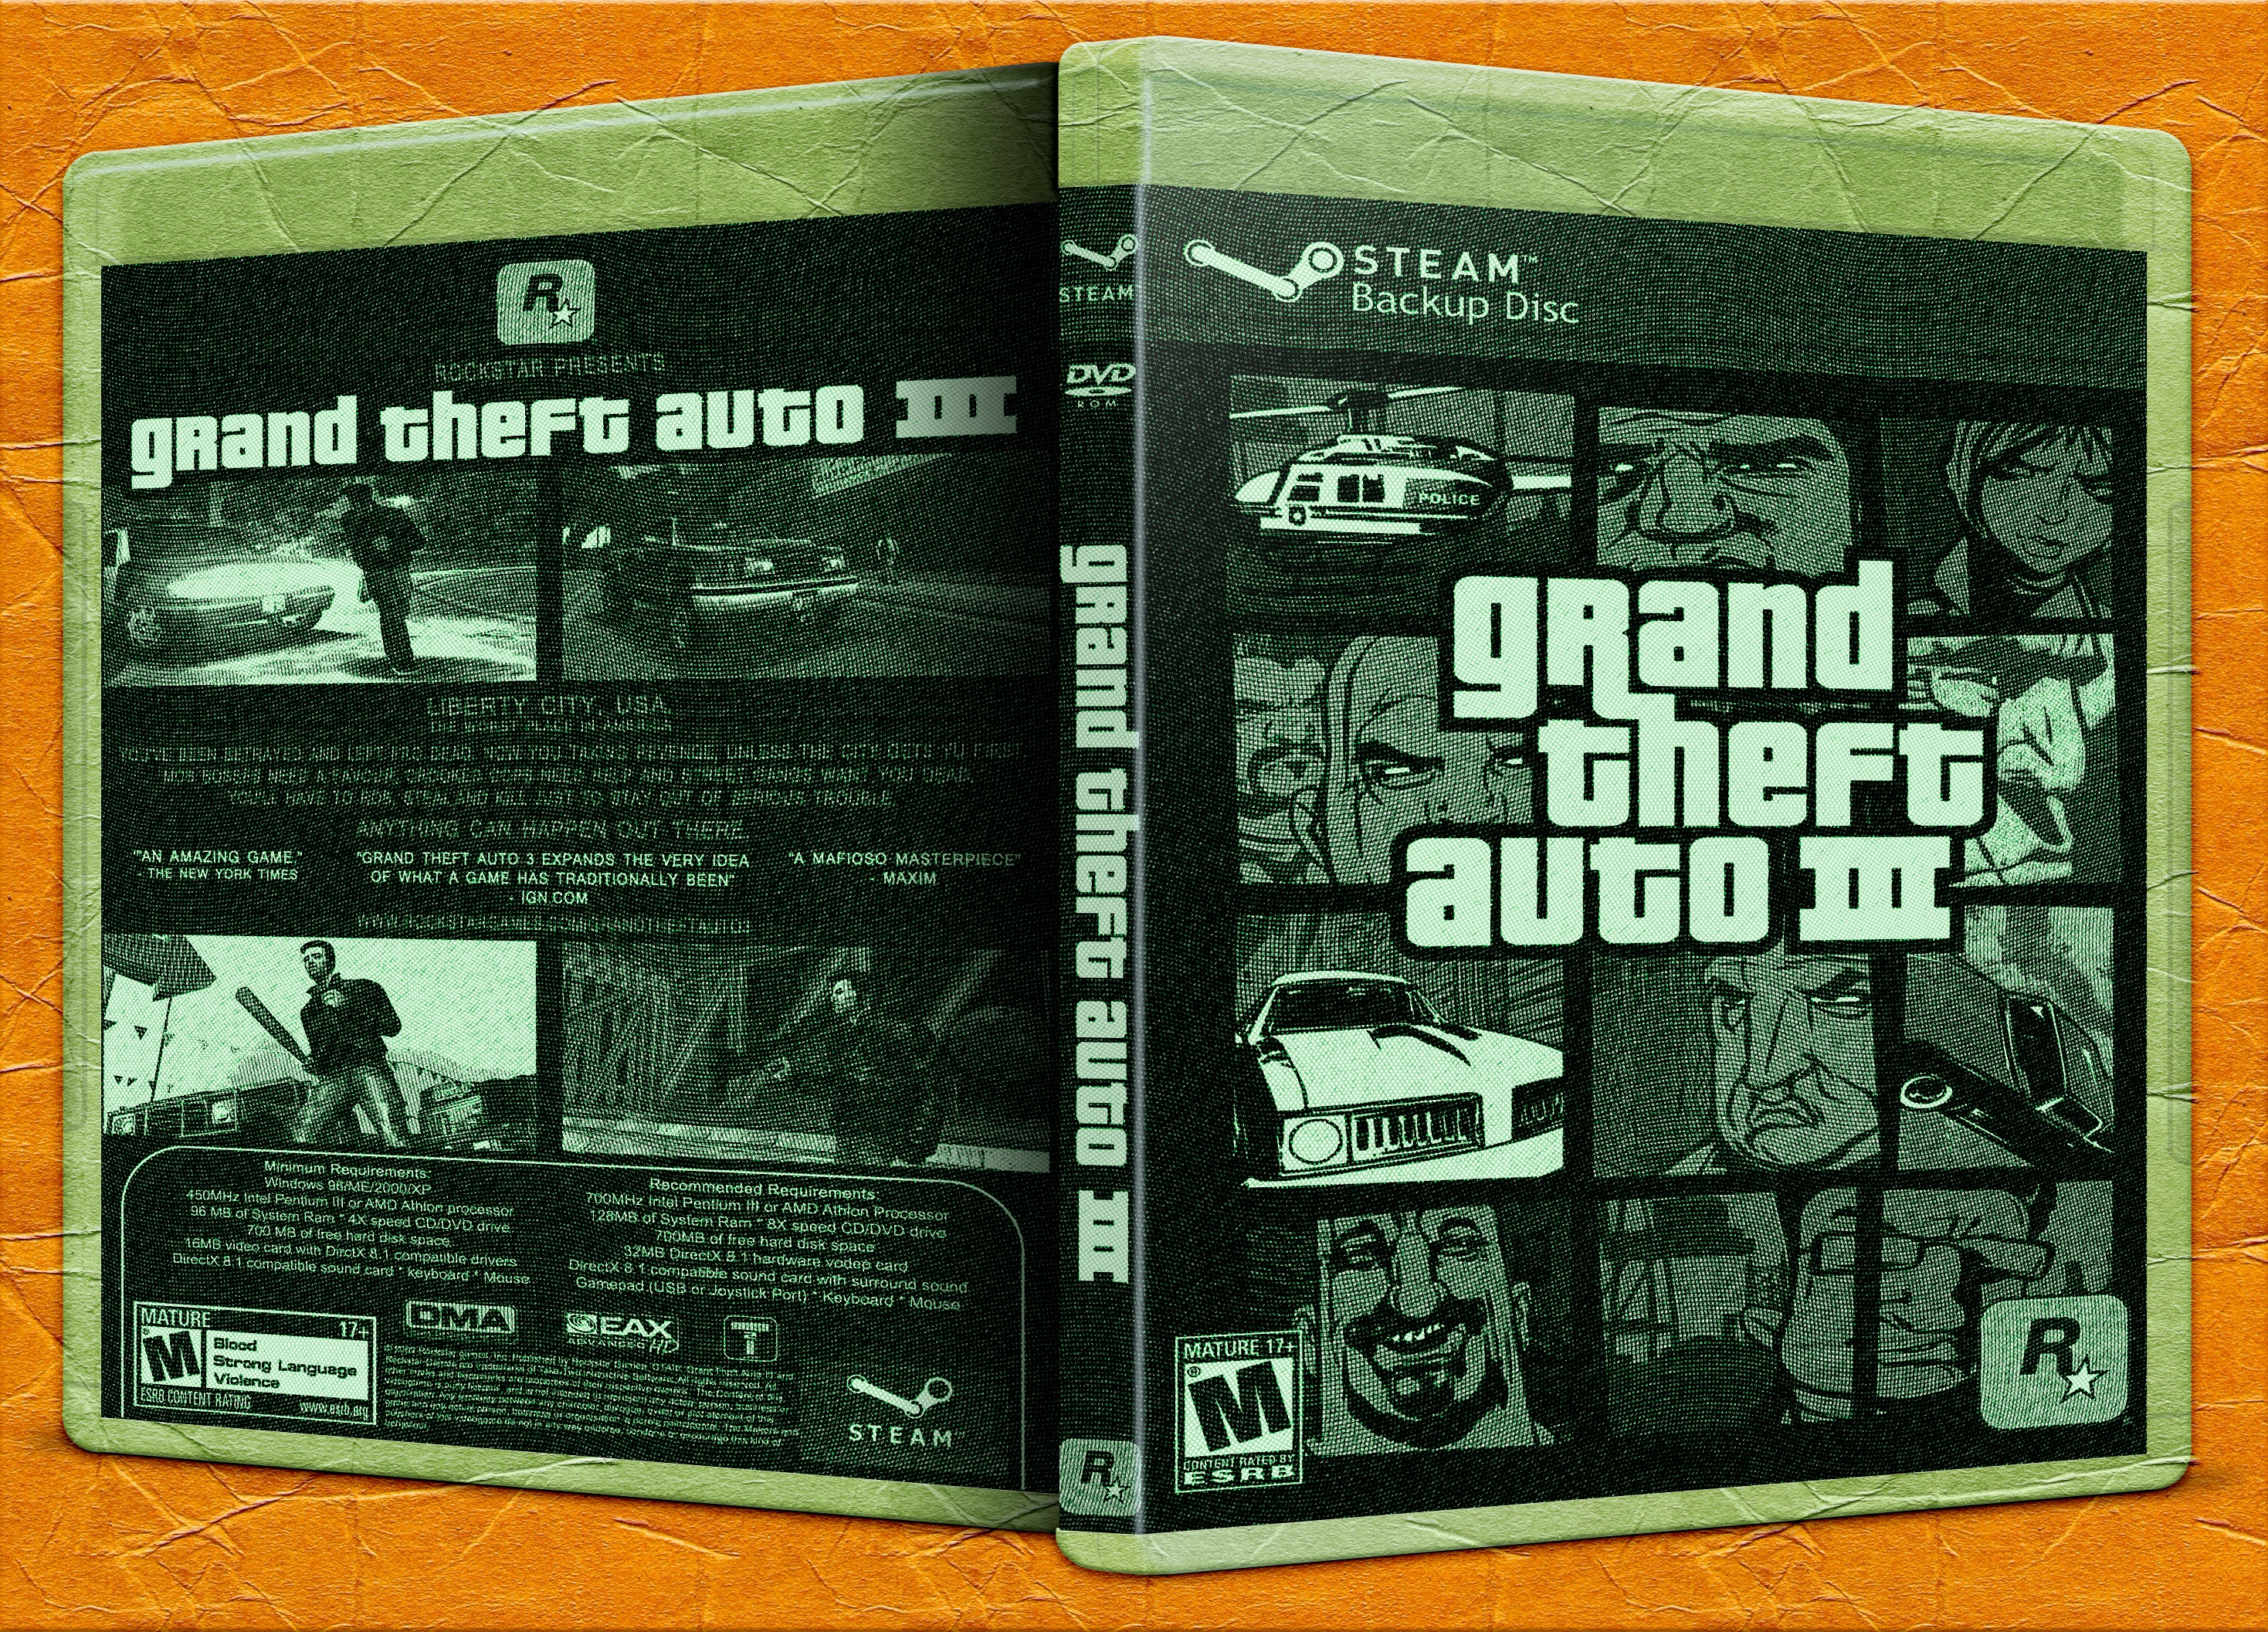 Viewing full size Grand Theft Auto III box cover